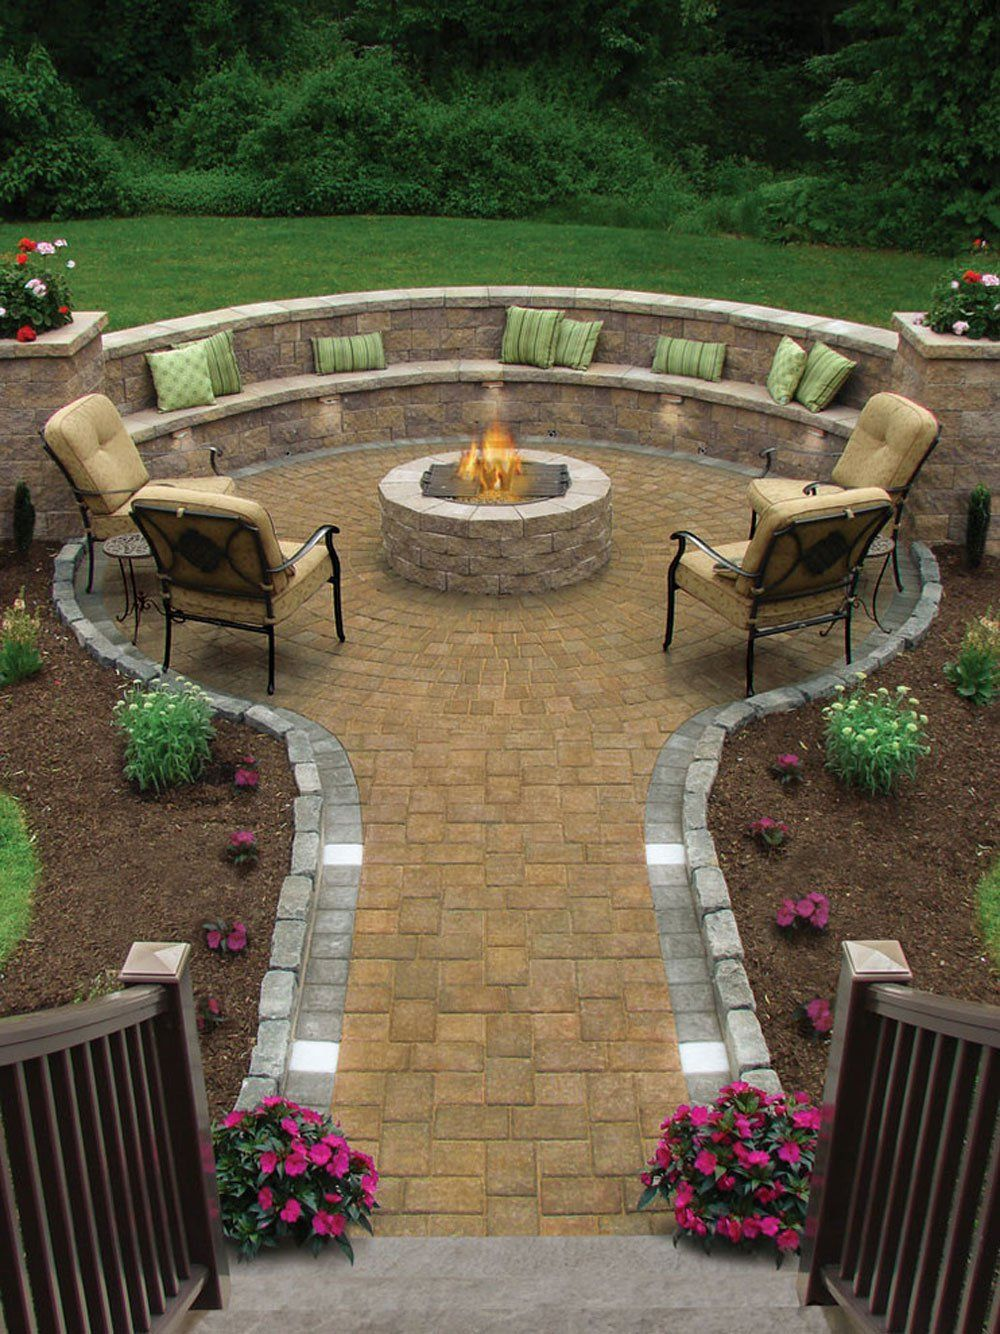 17 Of The Most Amazing Seating Area Around Fire Pit Ever Outdoor Pits Pinterest Backyard Patio And